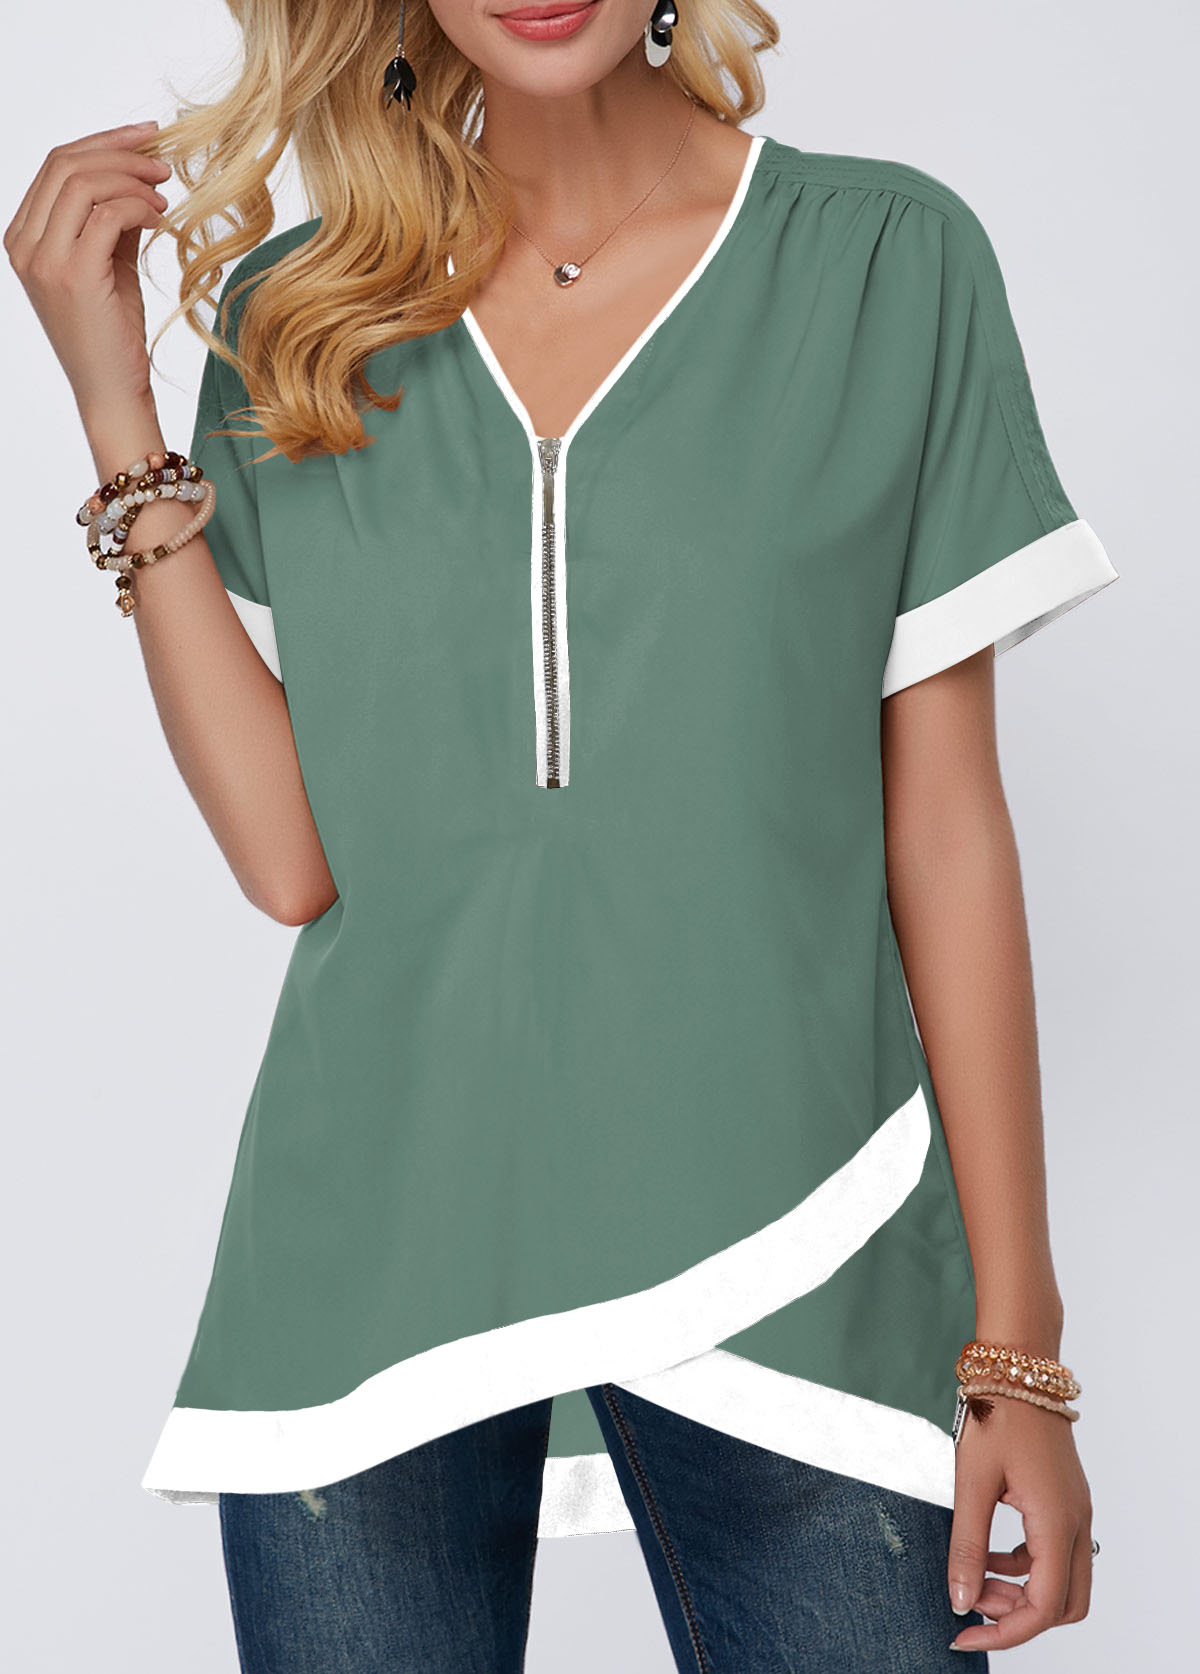 Crossover Hem Contrast Piping Half Zipper Blouse